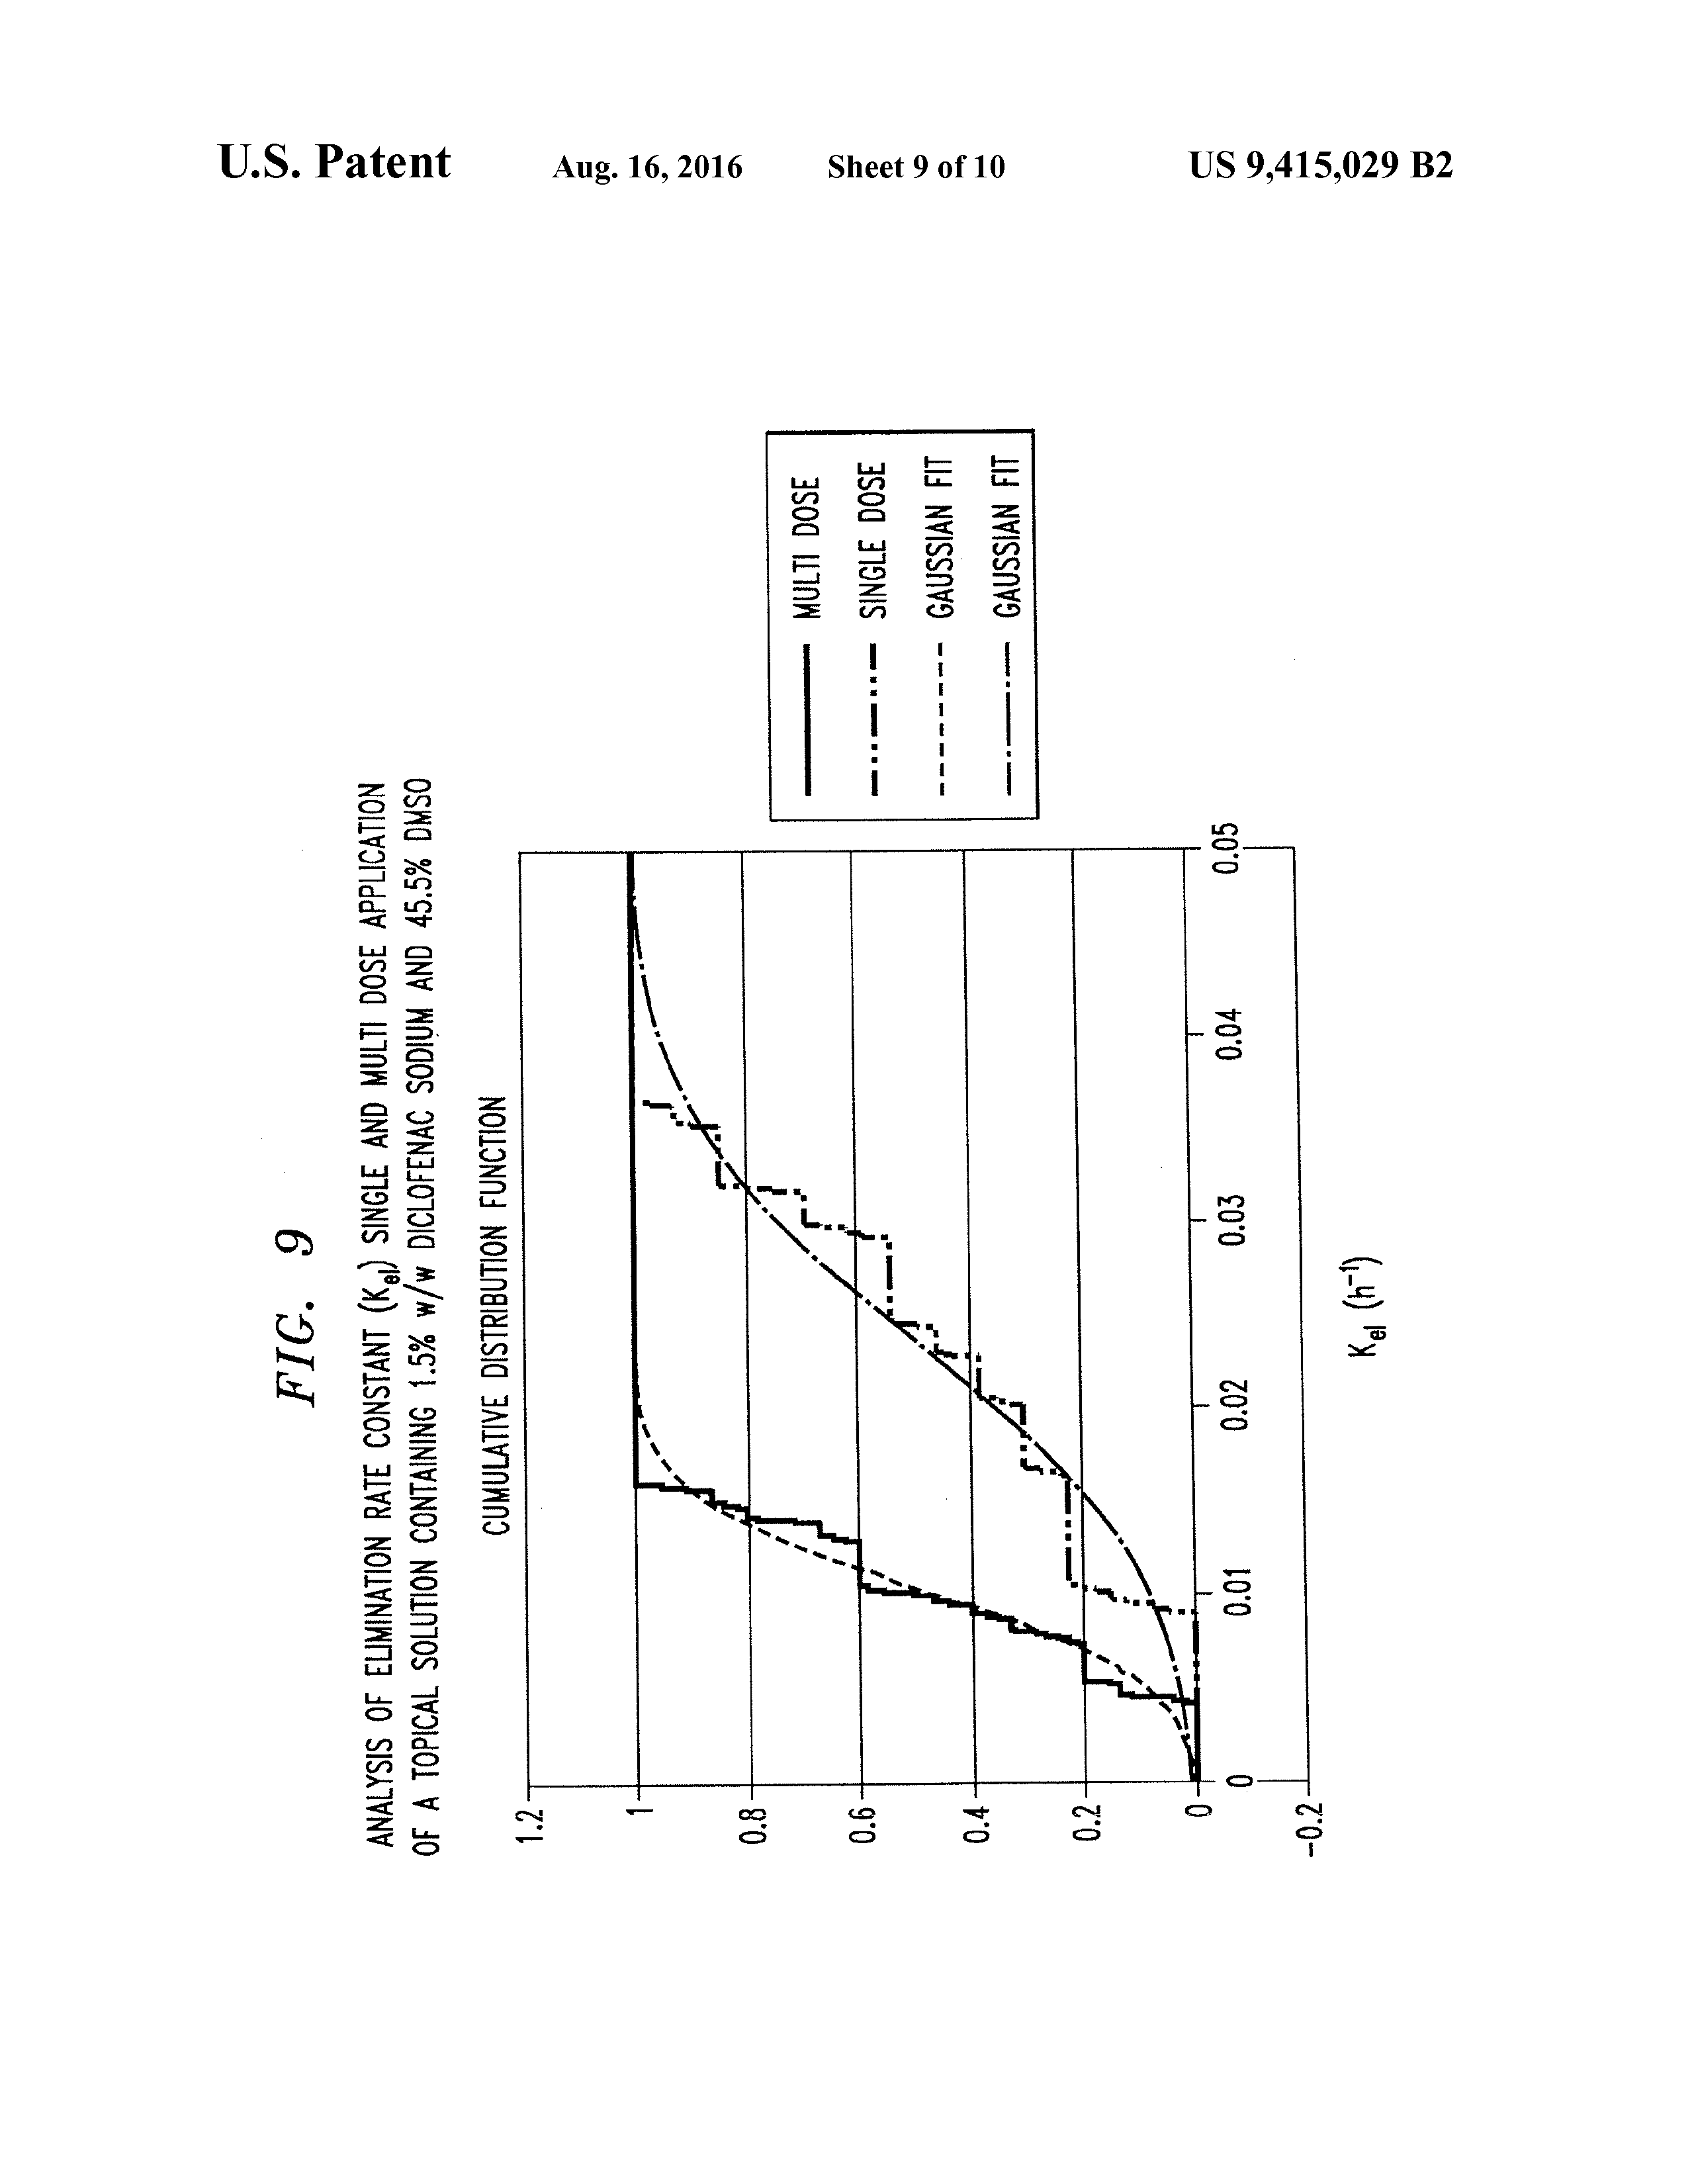 US 8618164 B2 - Treatment Of Pain With Topical Diclofenac